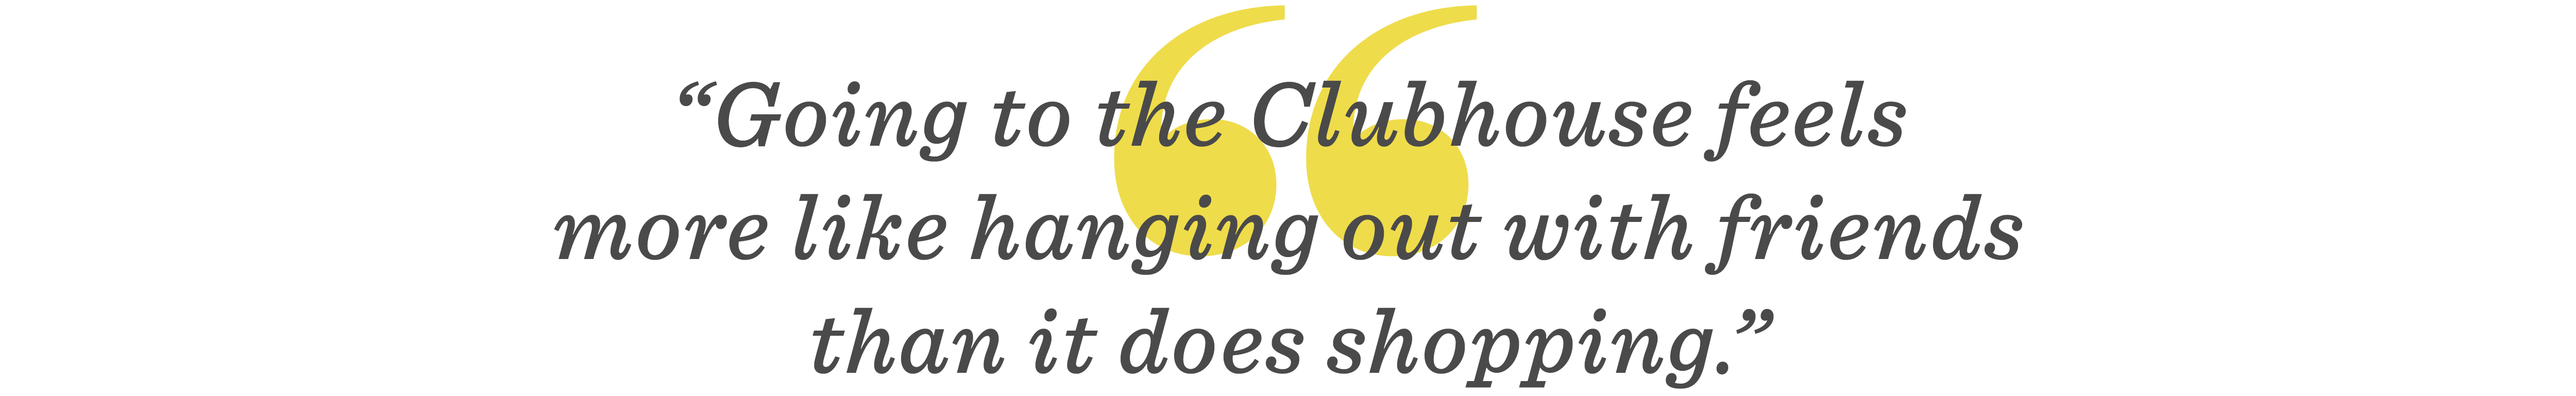 Going to the Clubhouse feels more like hanging out with friends than it does shopping.